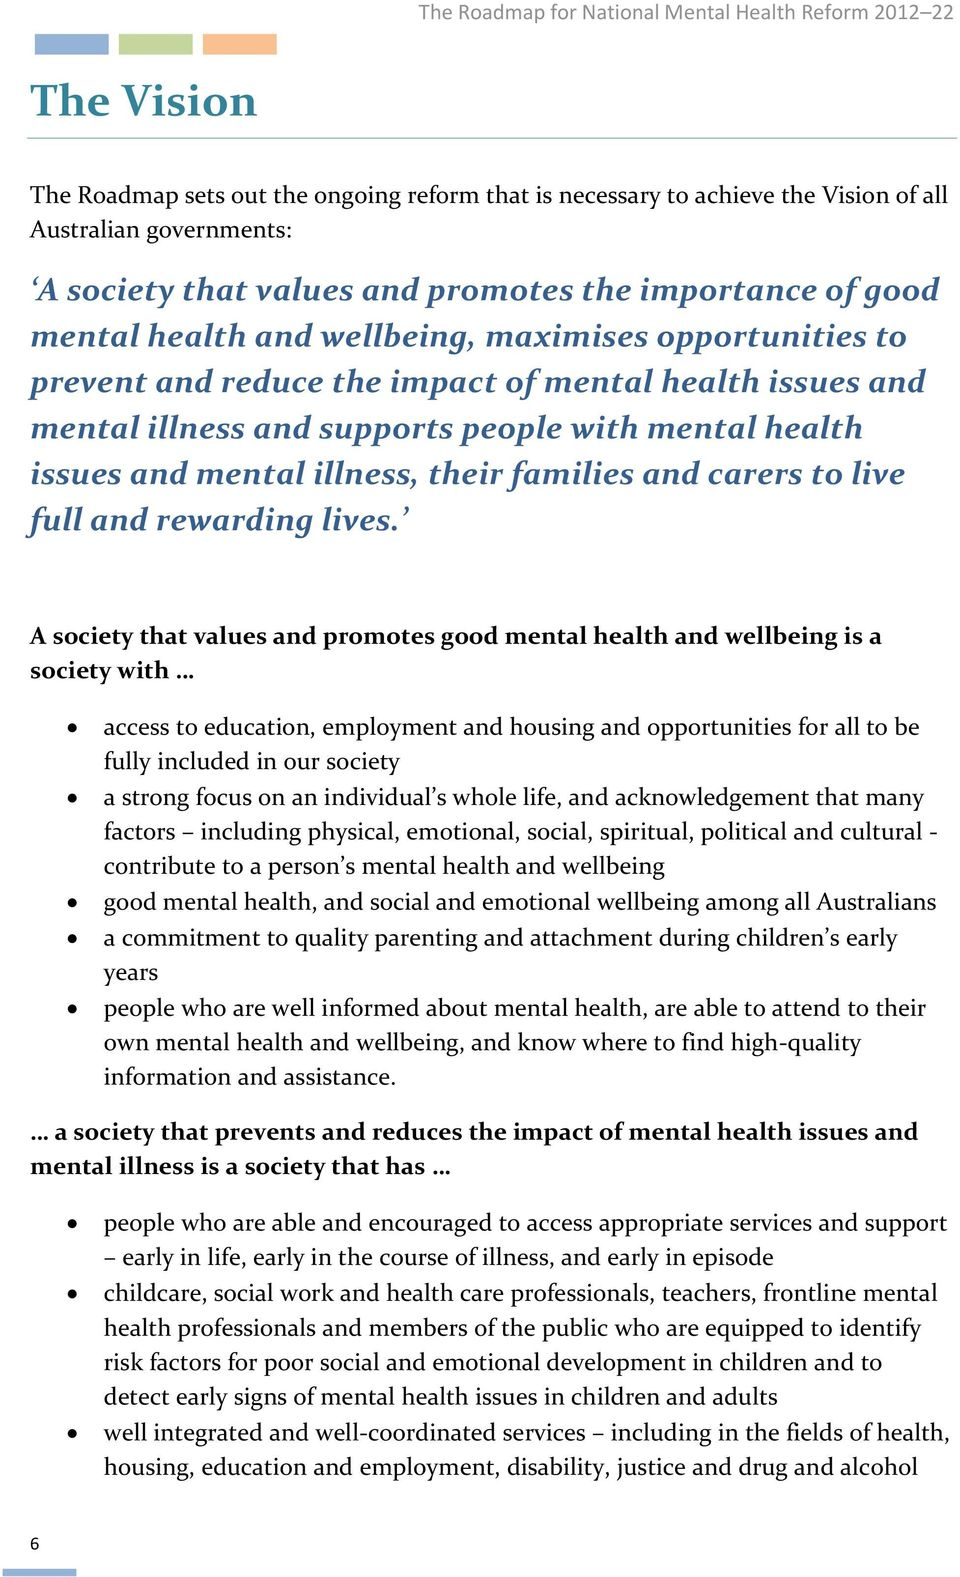 health issues and mental illness, their families and carers to live full and rewarding lives.